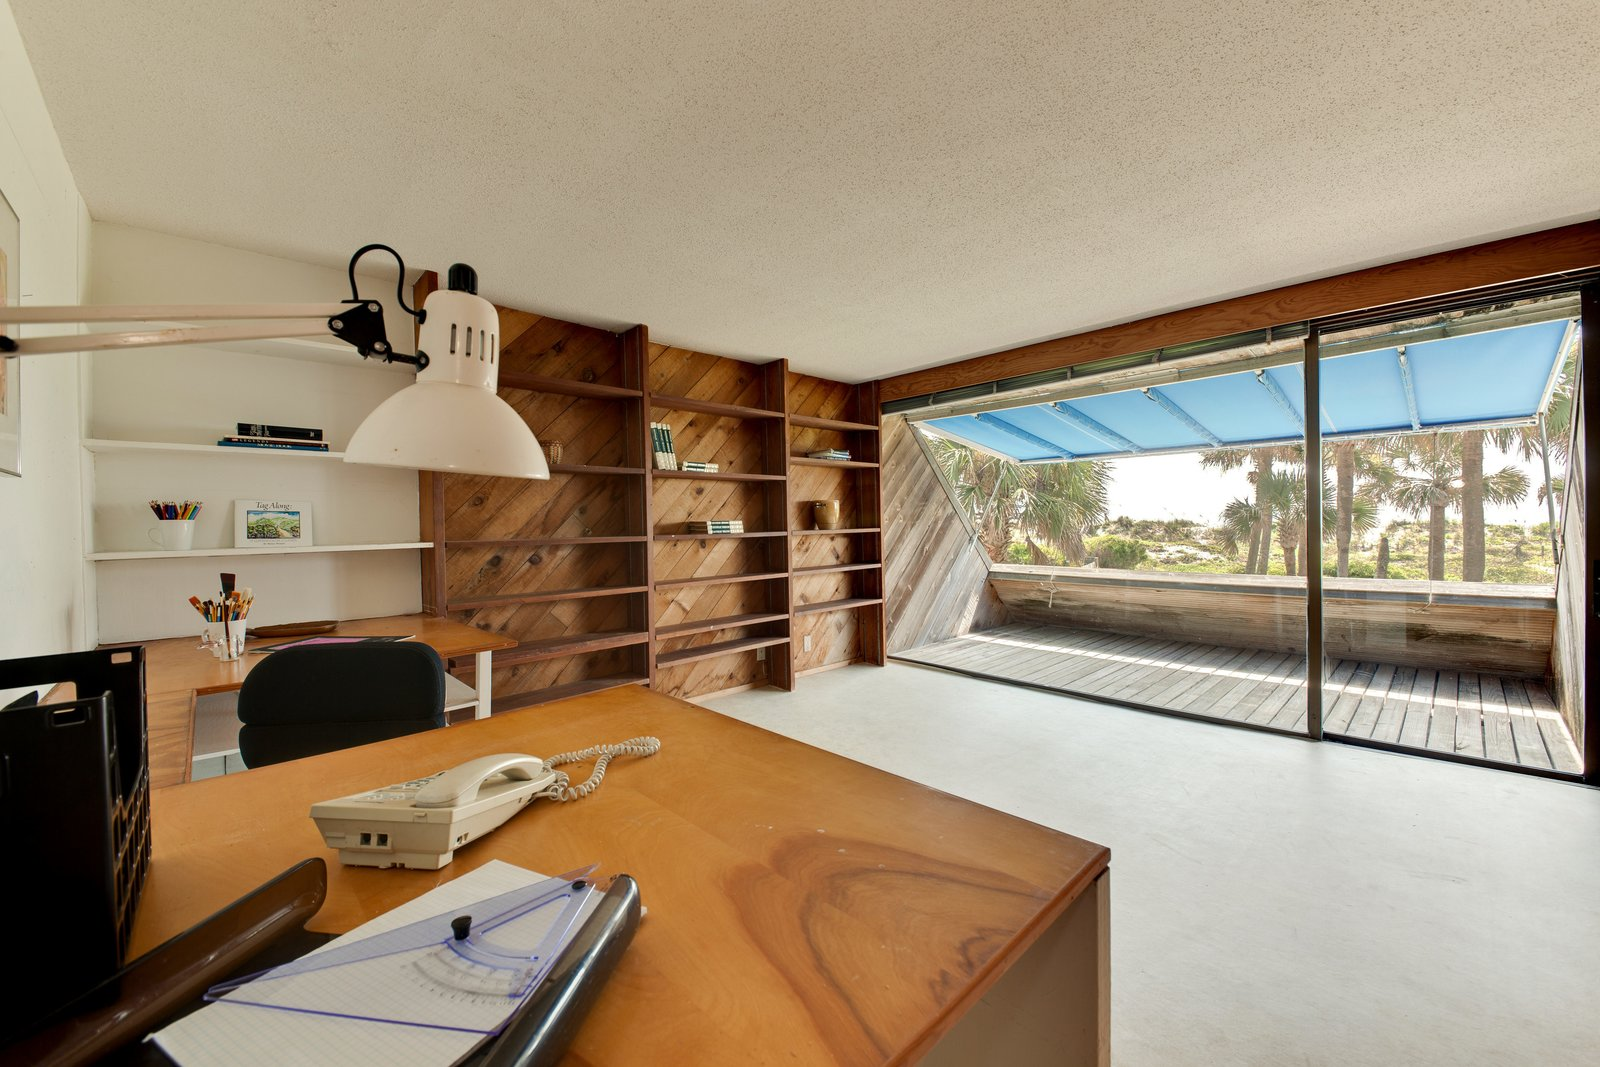 Office, Chair, Study Room Type, Desk, Shelves, and Lamps  Photo 11 of 13 in A Renowned Florida Architect's Geometric Family Home Hits the Market For the First Time